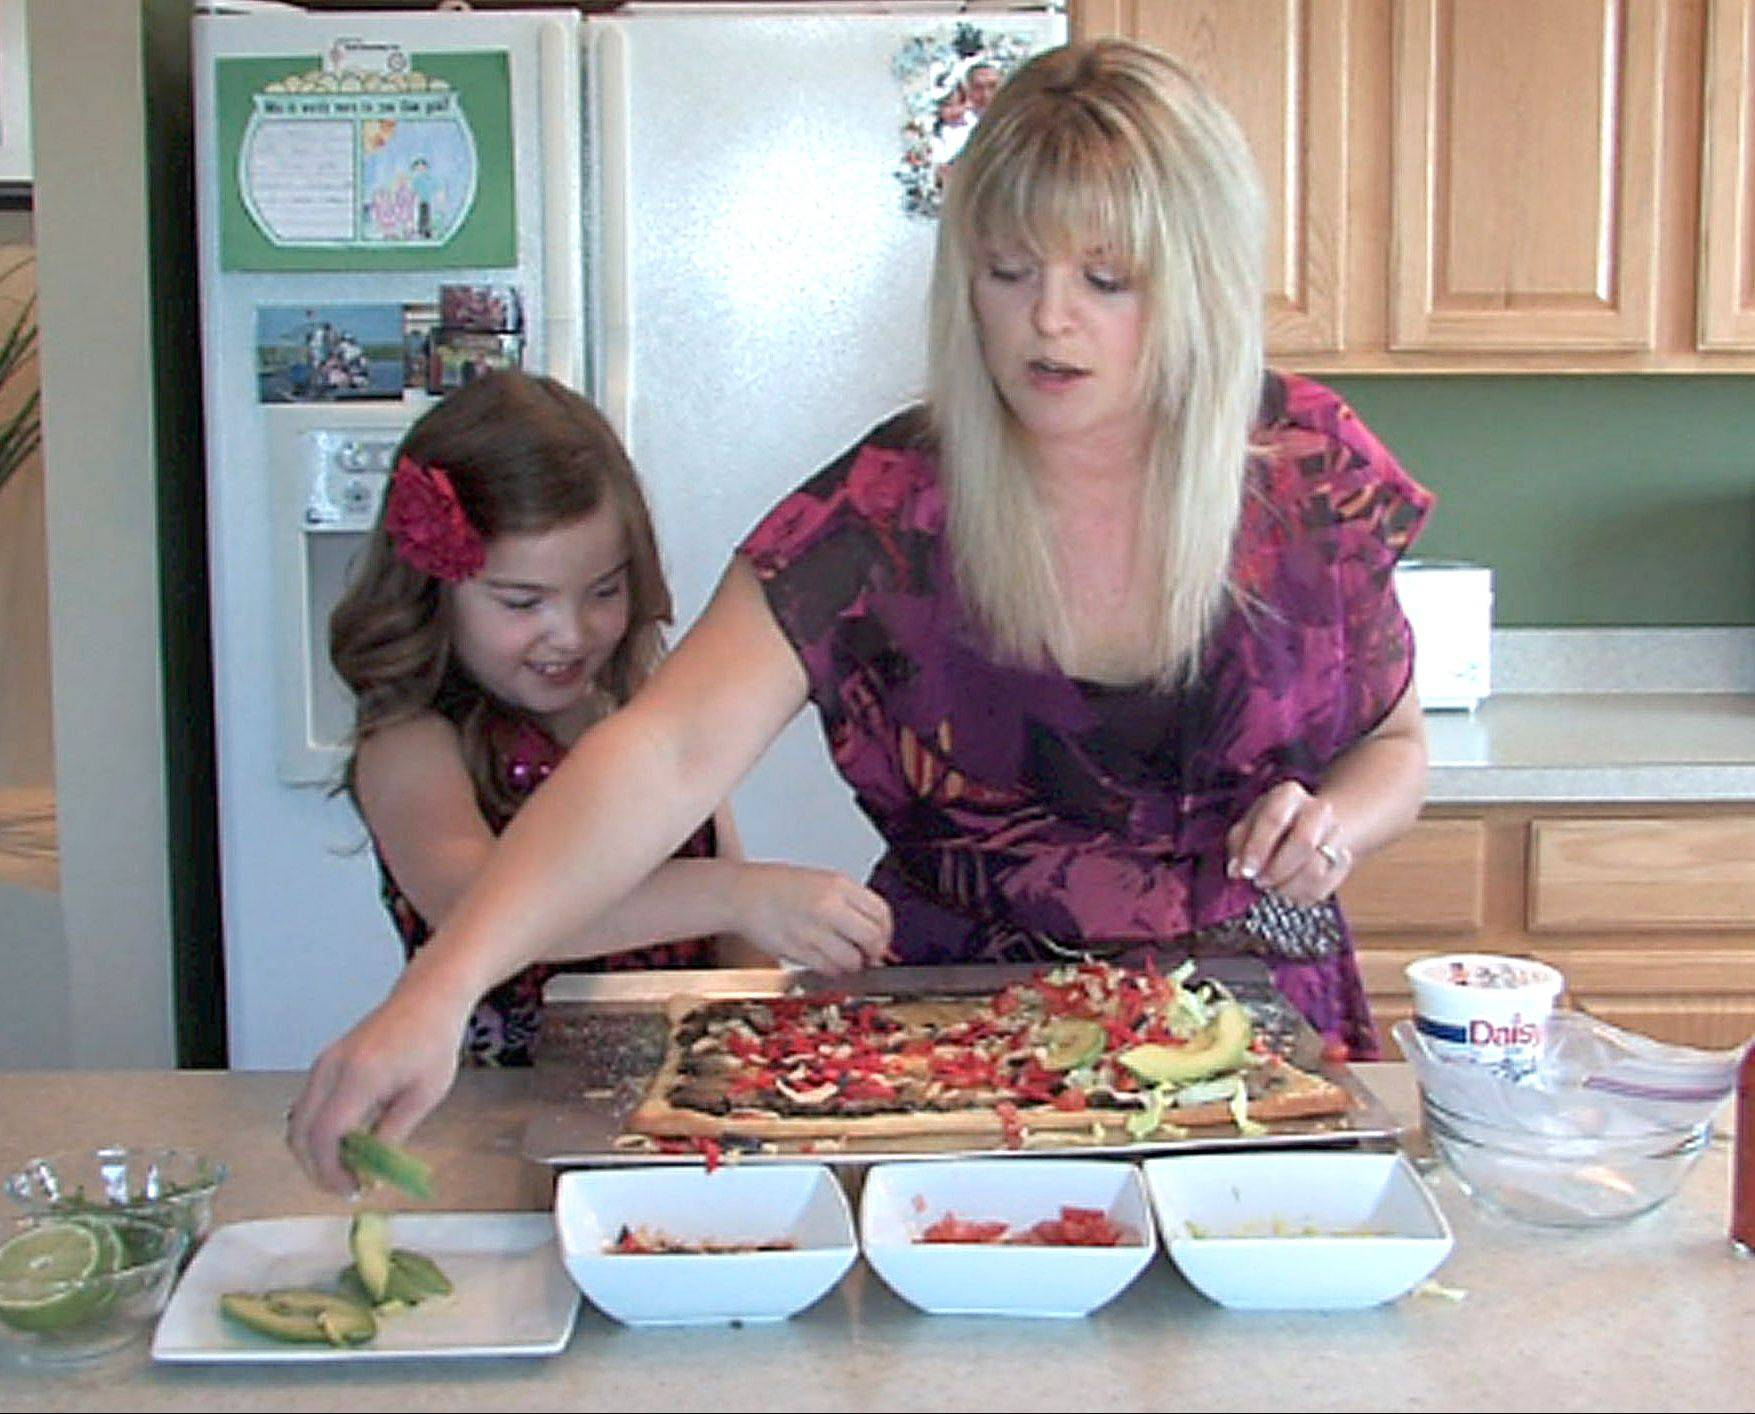 Jennifer Loiseau and her 7-year-old daughter, Maria, add lettuce, tomato, chips and guacamole to taco pizza in thier Lake in the Hills kitchen. She produces an online video cooking blog called AmateurKitchen.tv.